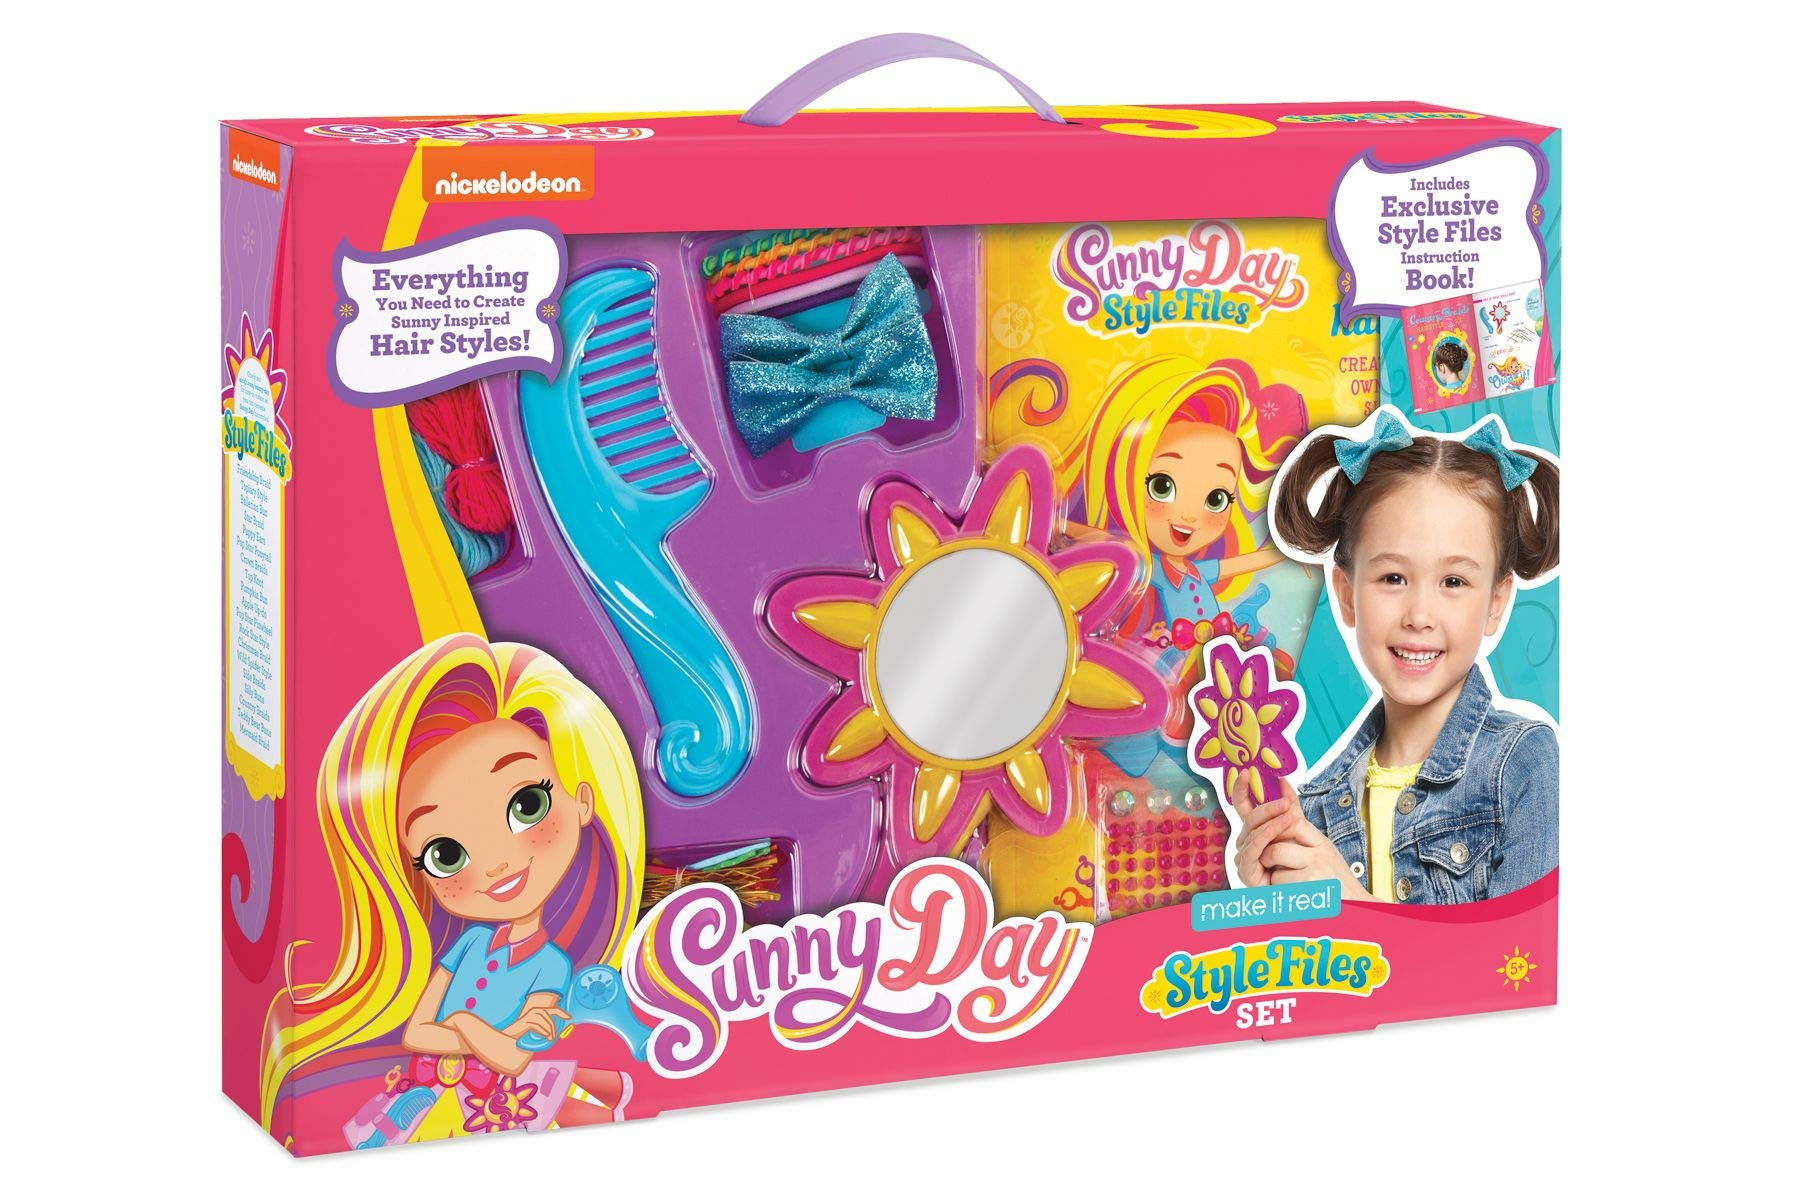 Make It Real - Sunny Day Style Files Set. DIY Fashion Hairstyle and Accessories Set for Little Girls Inspired by Nickelodeon's Sunny Day by Make It Real